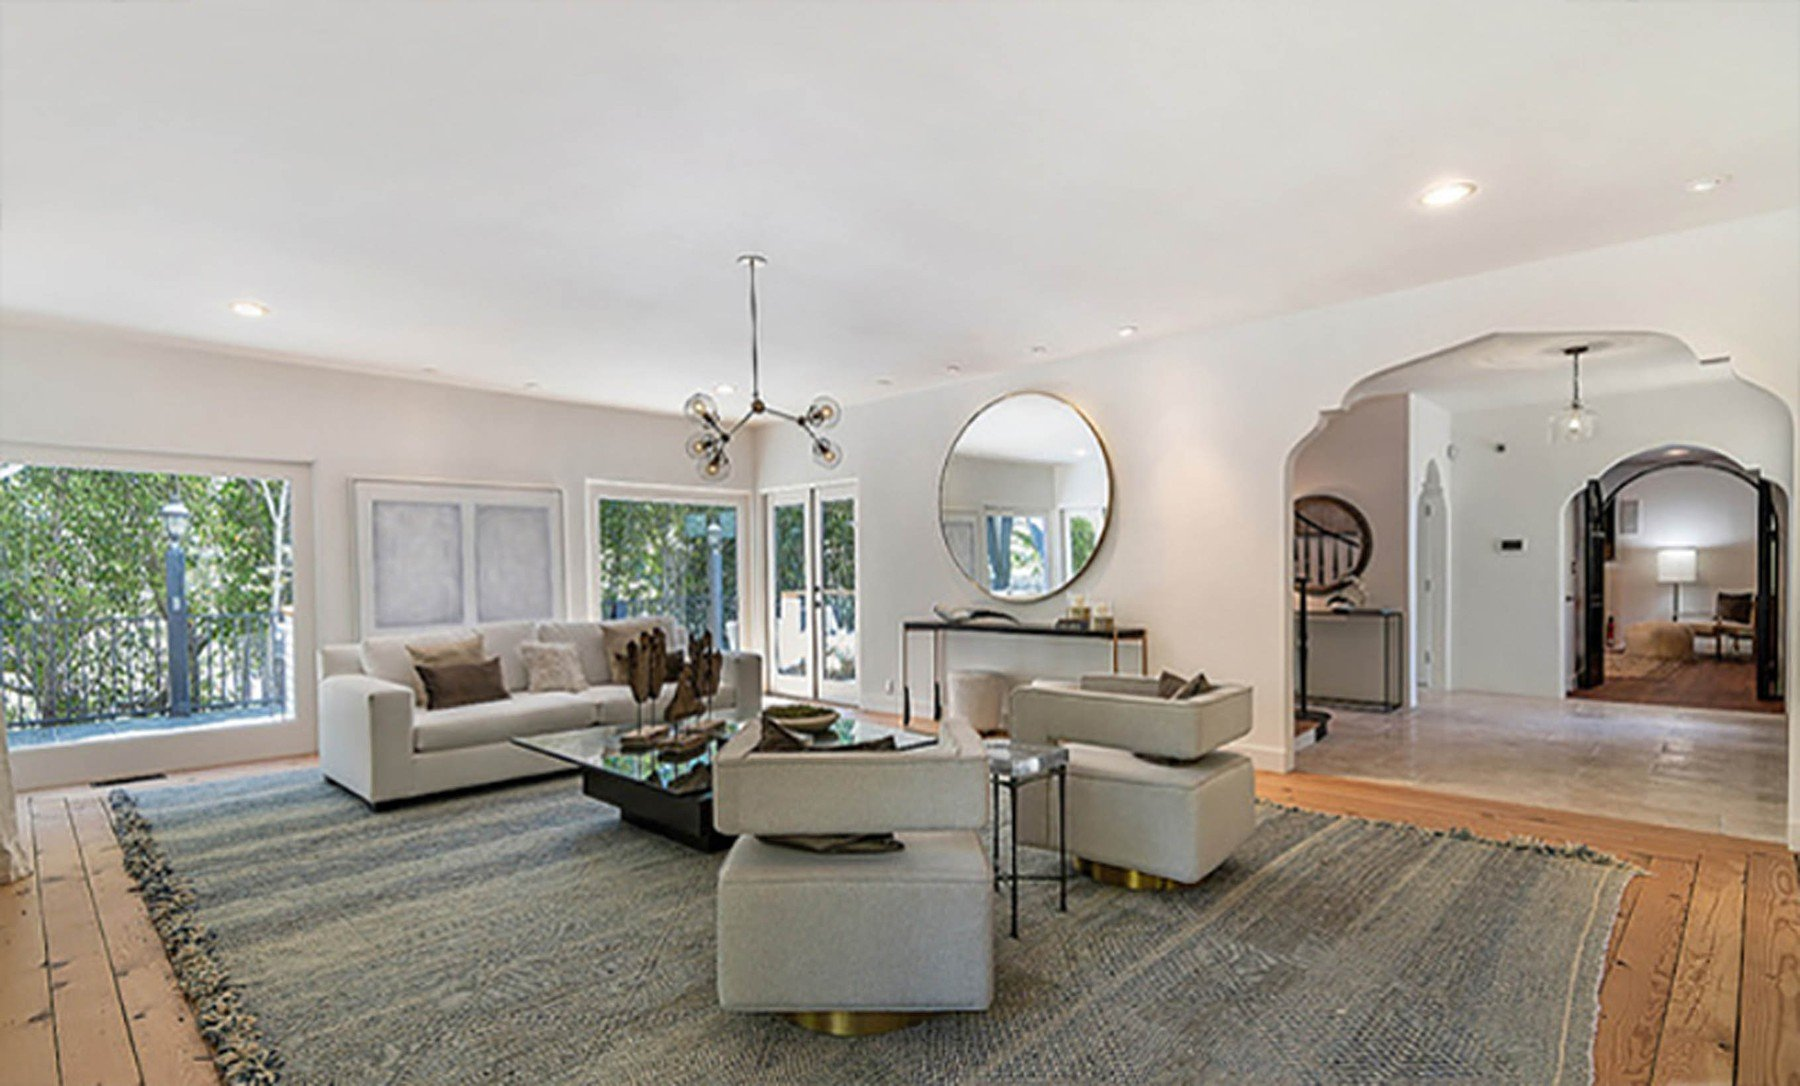 2-4-2019  Jessica Alba is looking to sell her home in Beverly Hills, Los Angeles for .195 million having recently purchased a larger house. With 5,300 square feet of living space, there are 5 bedrooms and 7 bathrooms. Built in the mid-1970s, the house sits on almost half of an acre of land behind large security gates.  Pictured: Jessica Alba's house, Image: 423689995, License: Rights-managed, Restrictions: , Model Release: no, Credit line: Profimedia, Planet